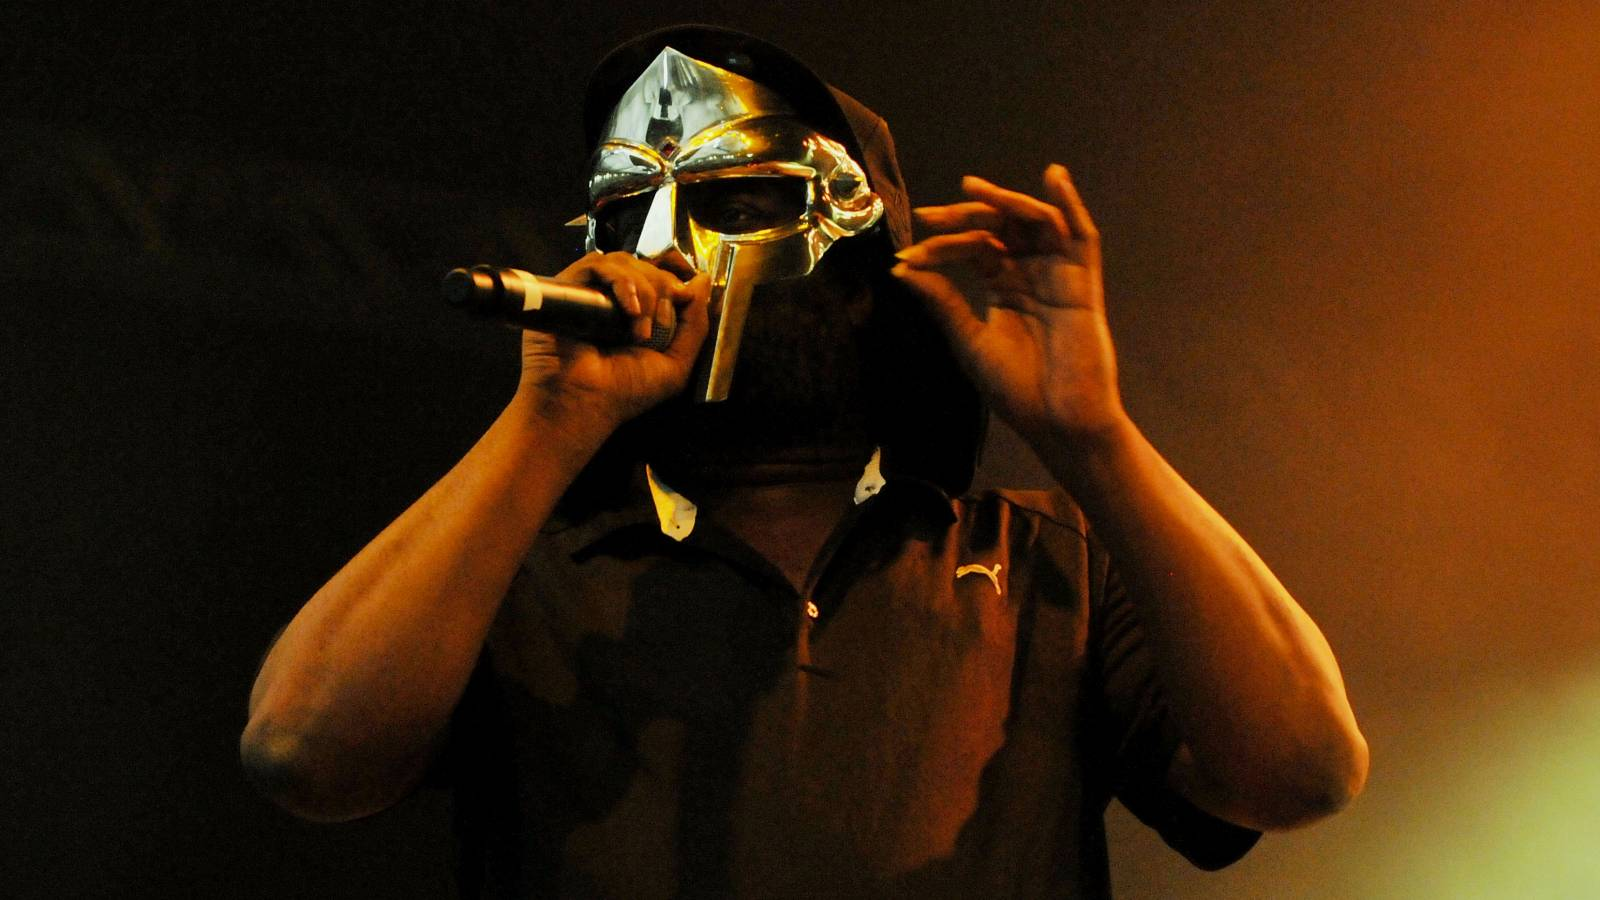 MF DOOM Fans Point Out Perceived Hypocrisy Of Joe Biden's Inauguration Playlist